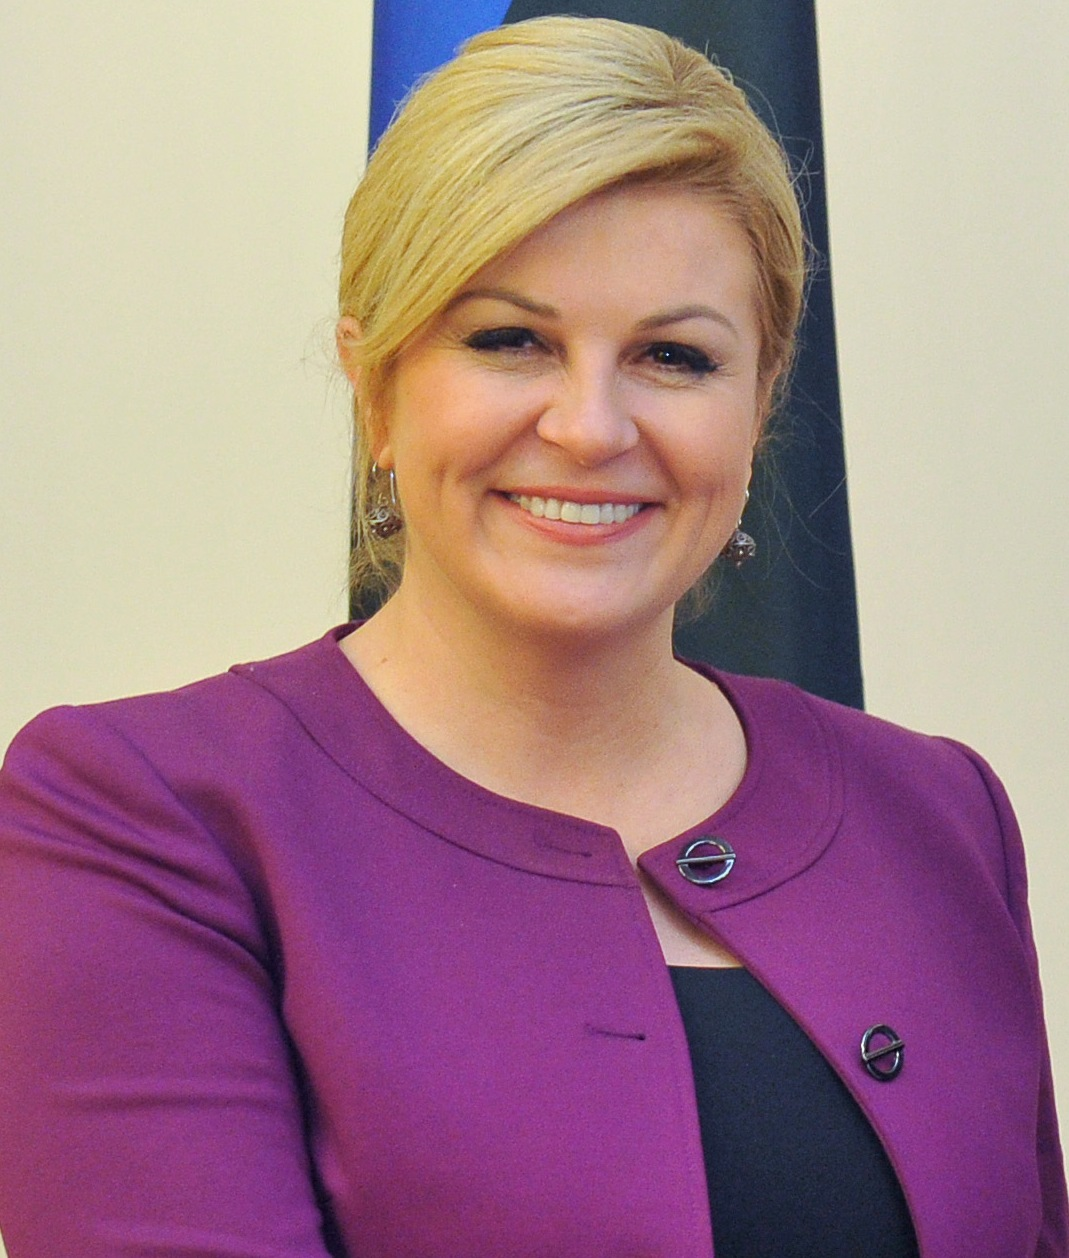 Image Result For President Of Croatia Wikipedia